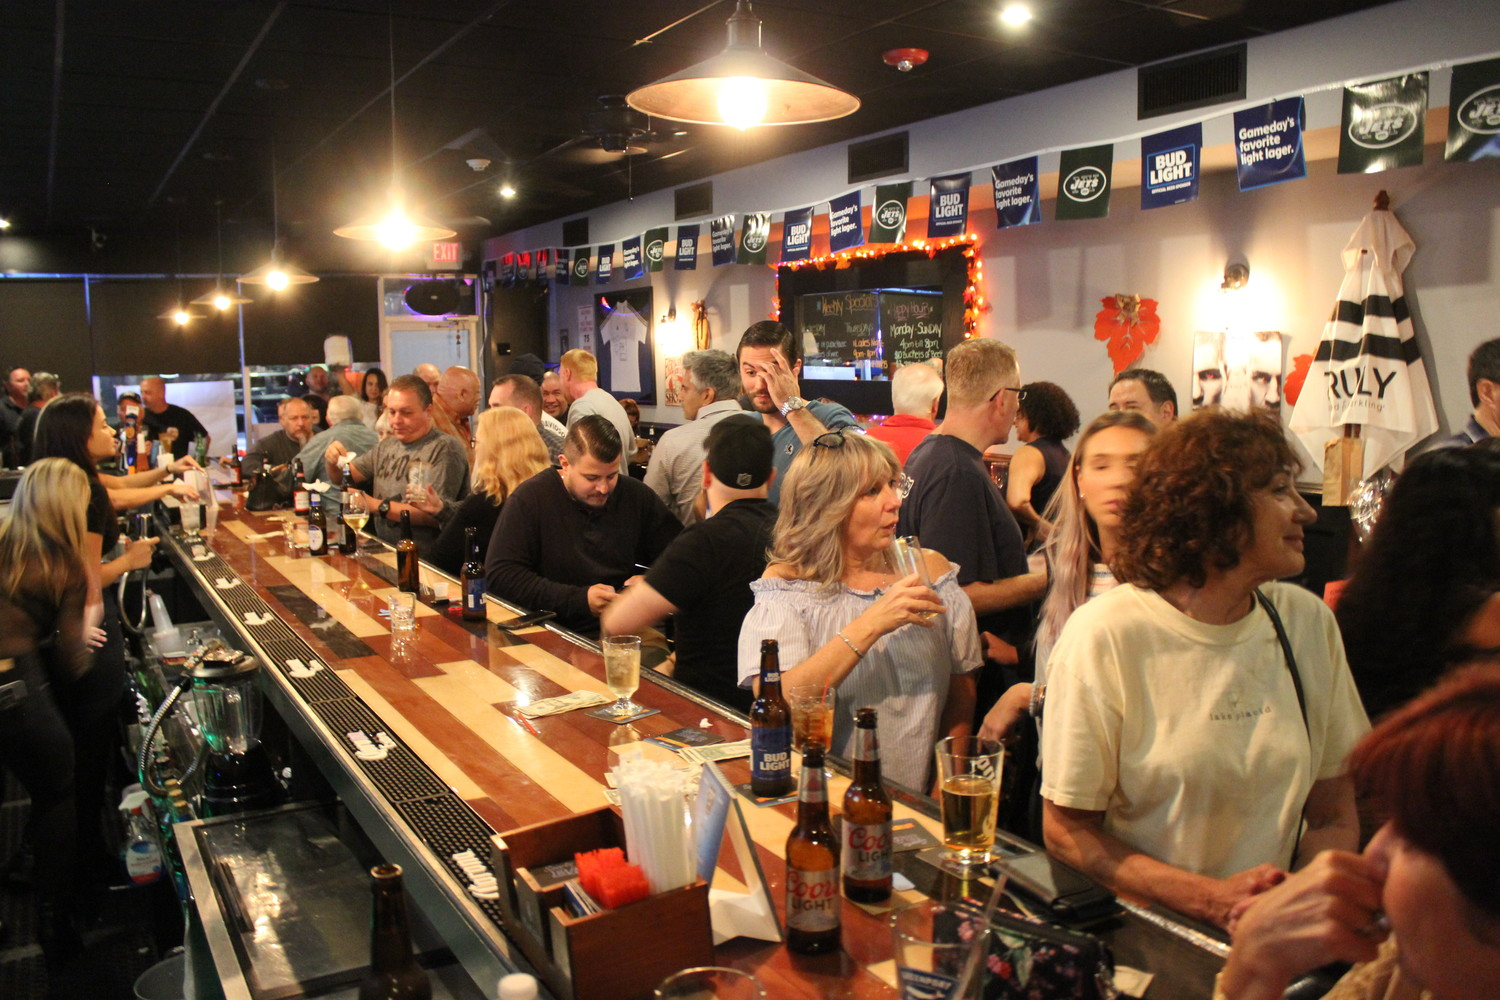 Public House 106 was crowded with people who gathered to show their support for the American Legion at its fundraiser on Oct. 5.